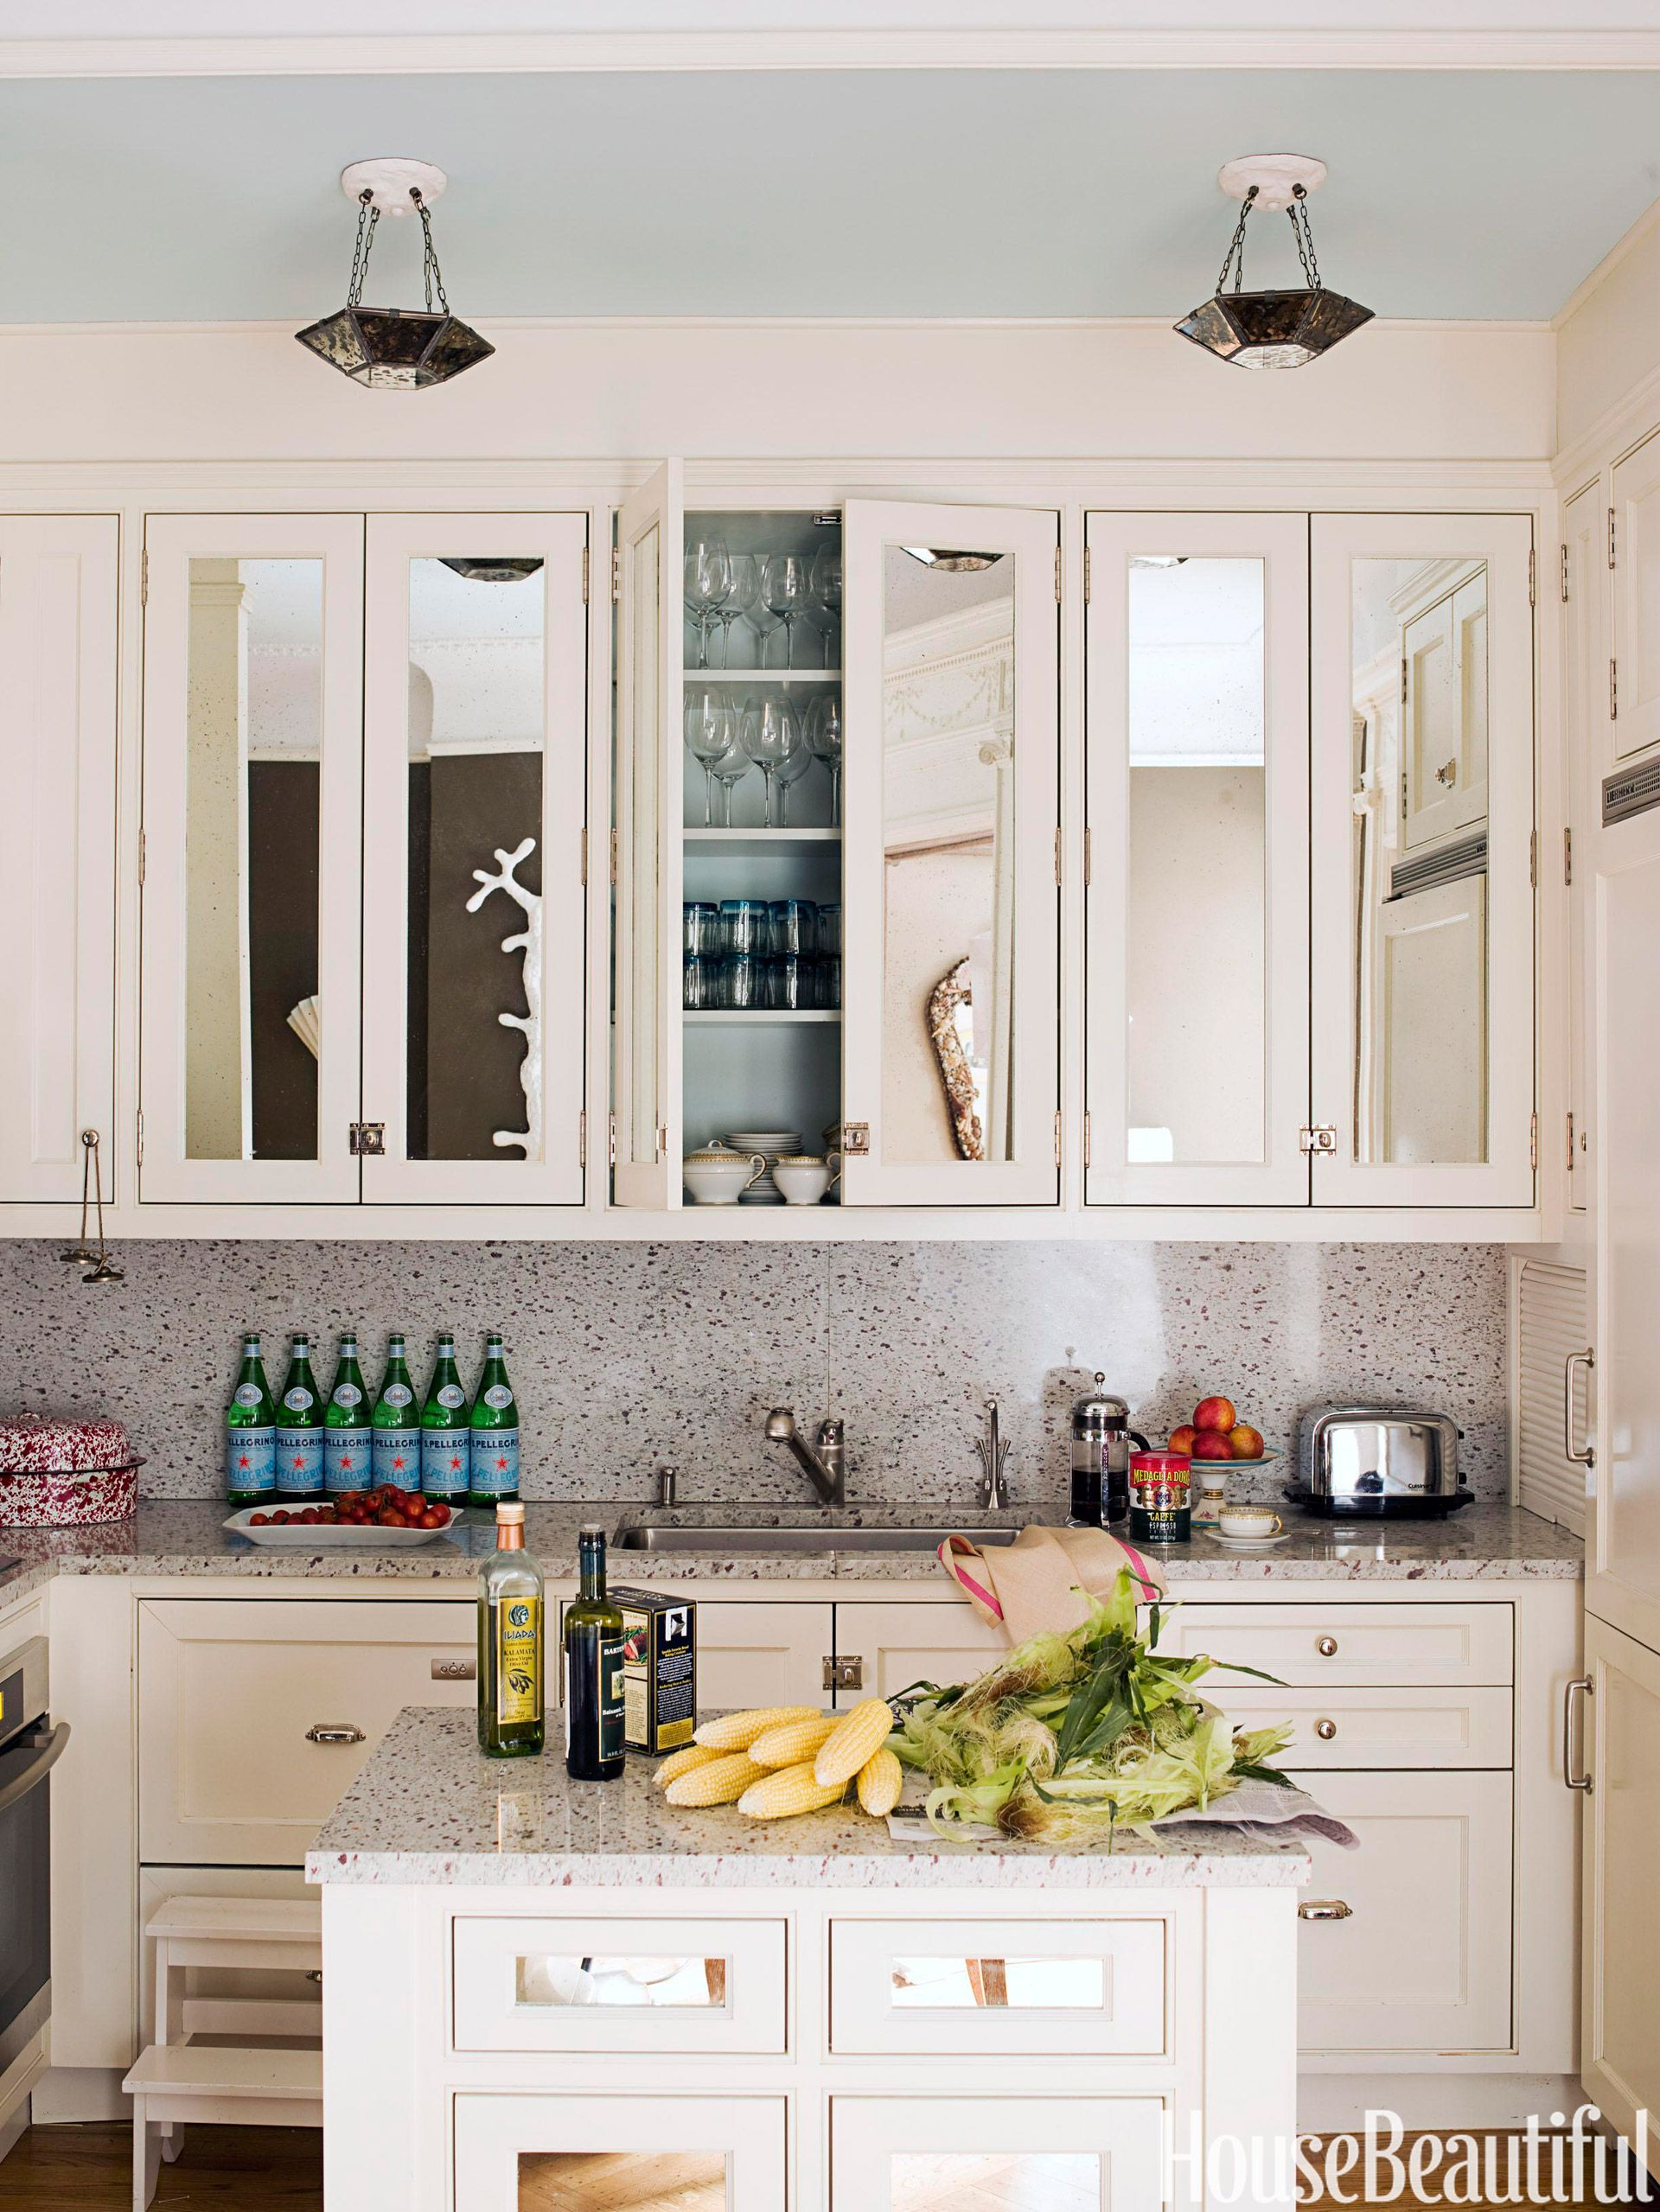 Antiqued Mirrored Gl On Cabinet Doors Enlarges The Small Kitchen In A Brooklyn Townhouse Decorated By Jonathan Berger Granite Countertops And Backsplash